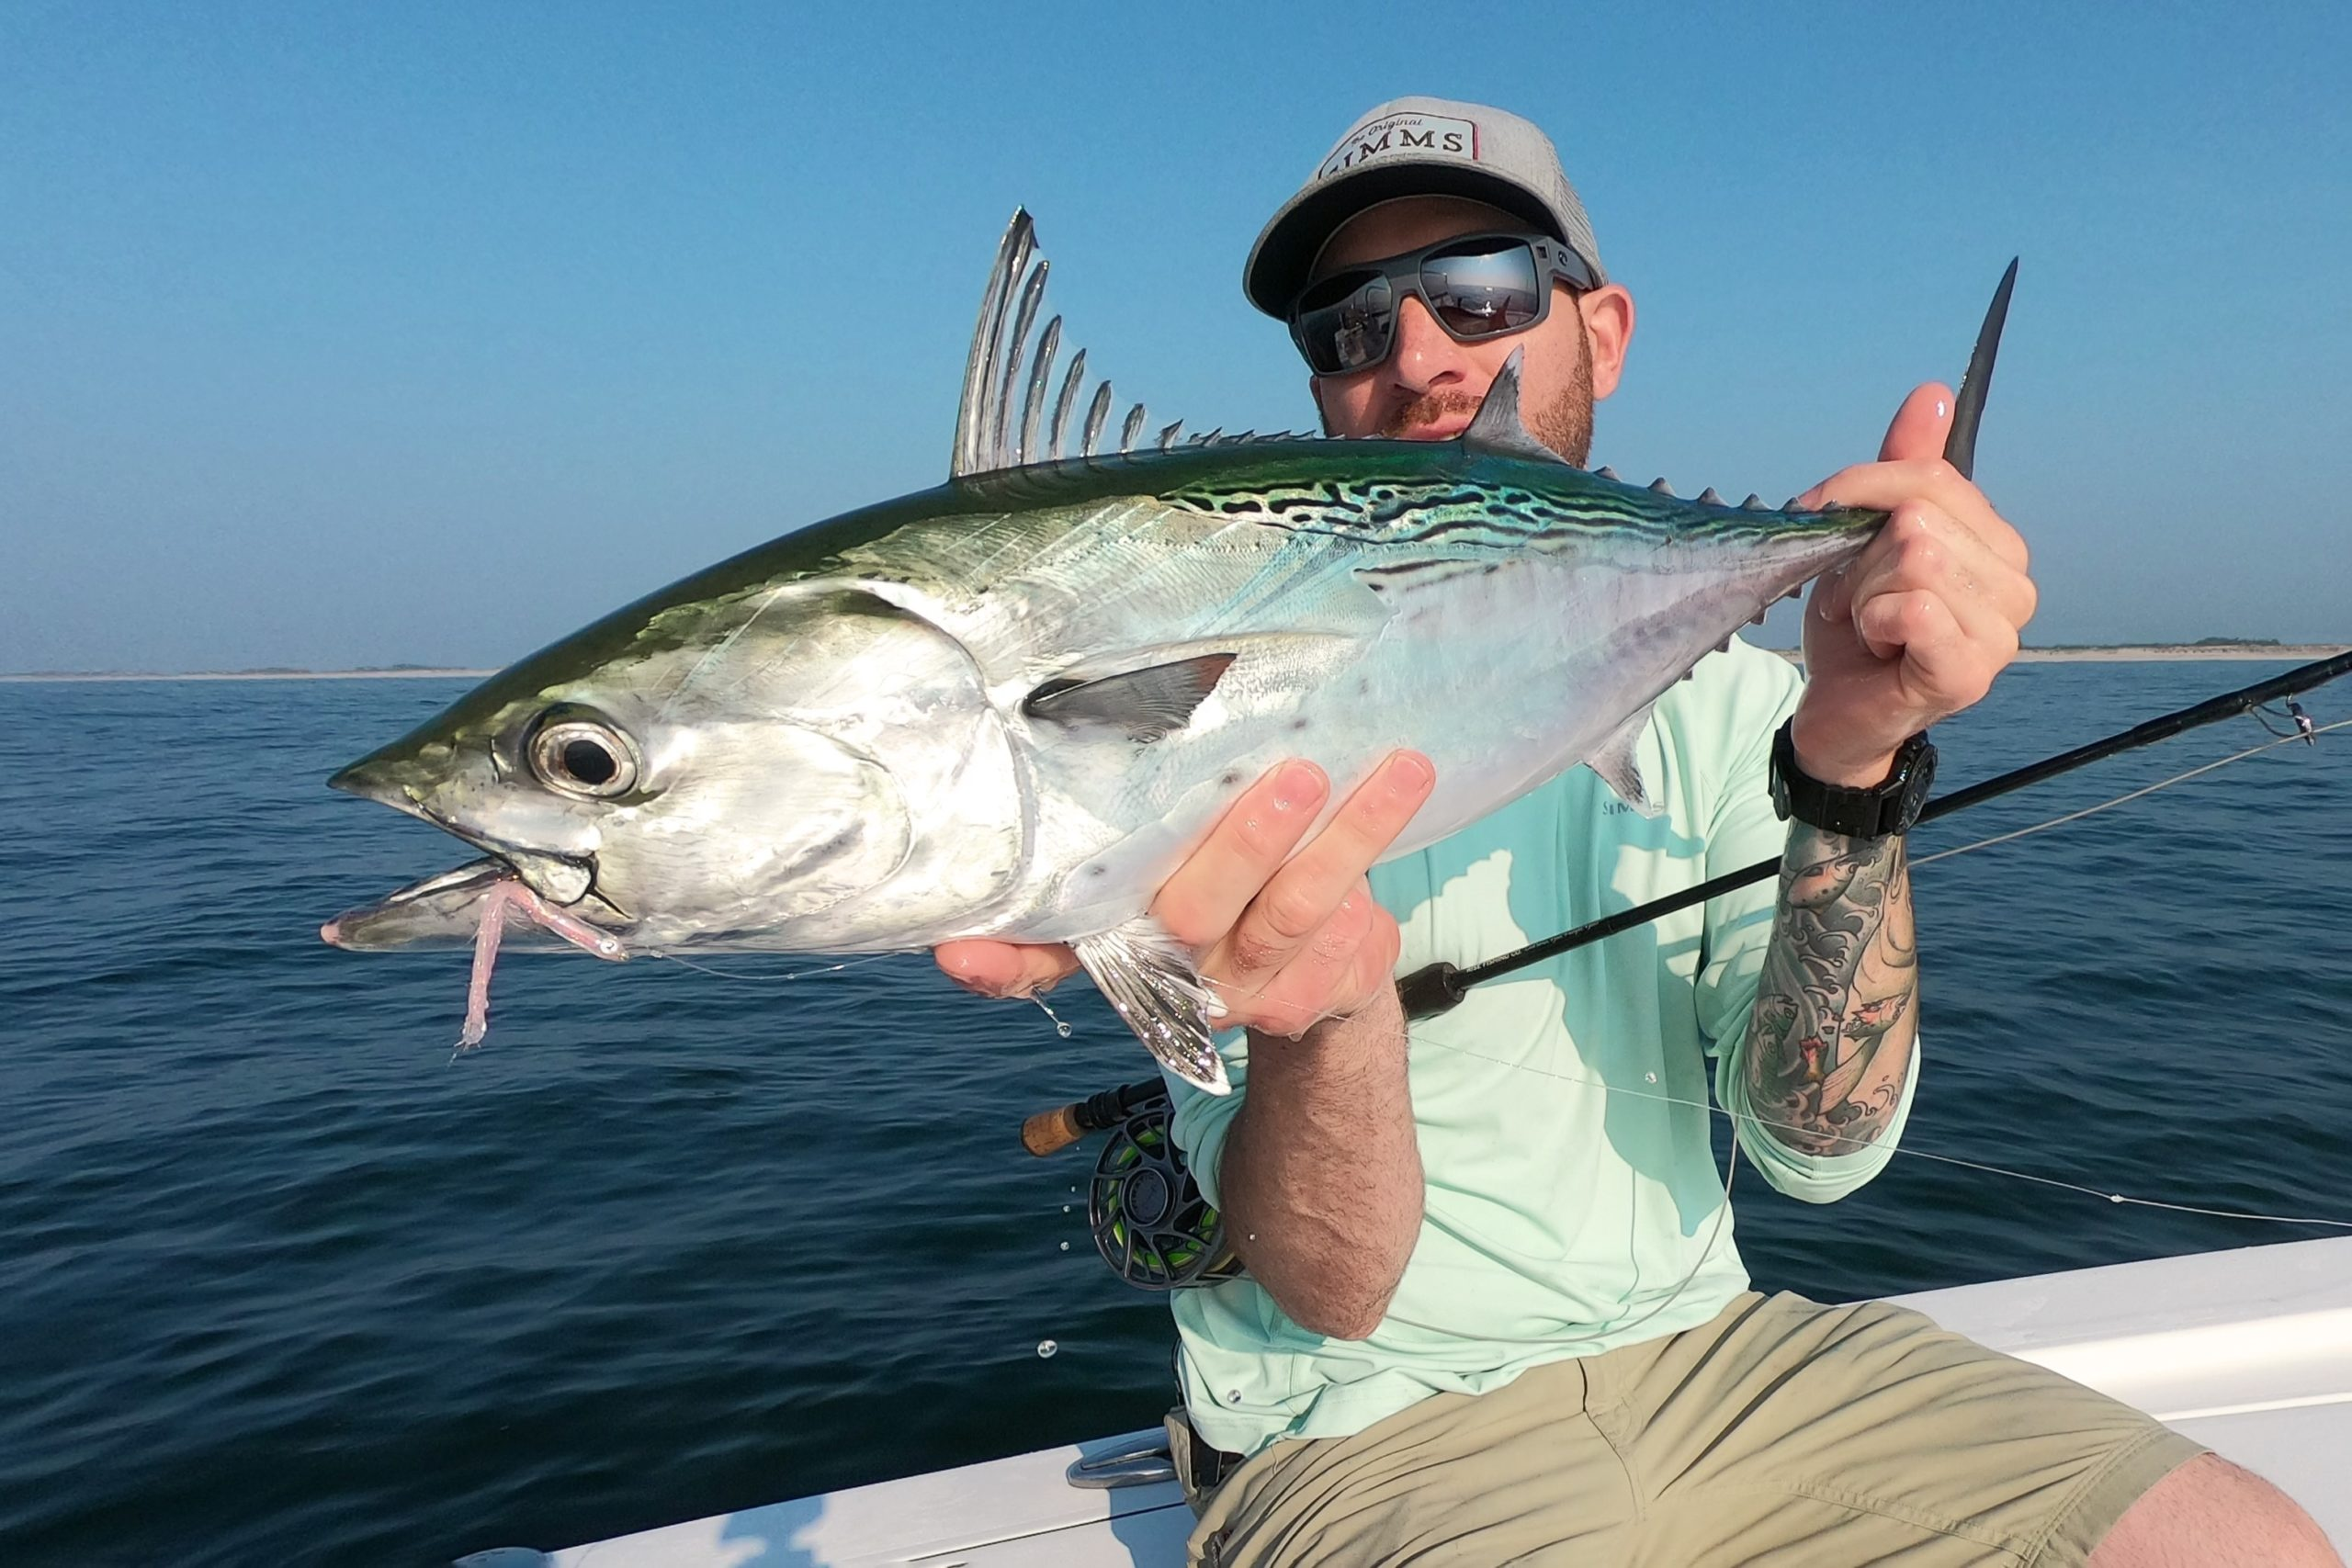 Jeff Lomonaco with the first false albacore landed off the South Fork this season.